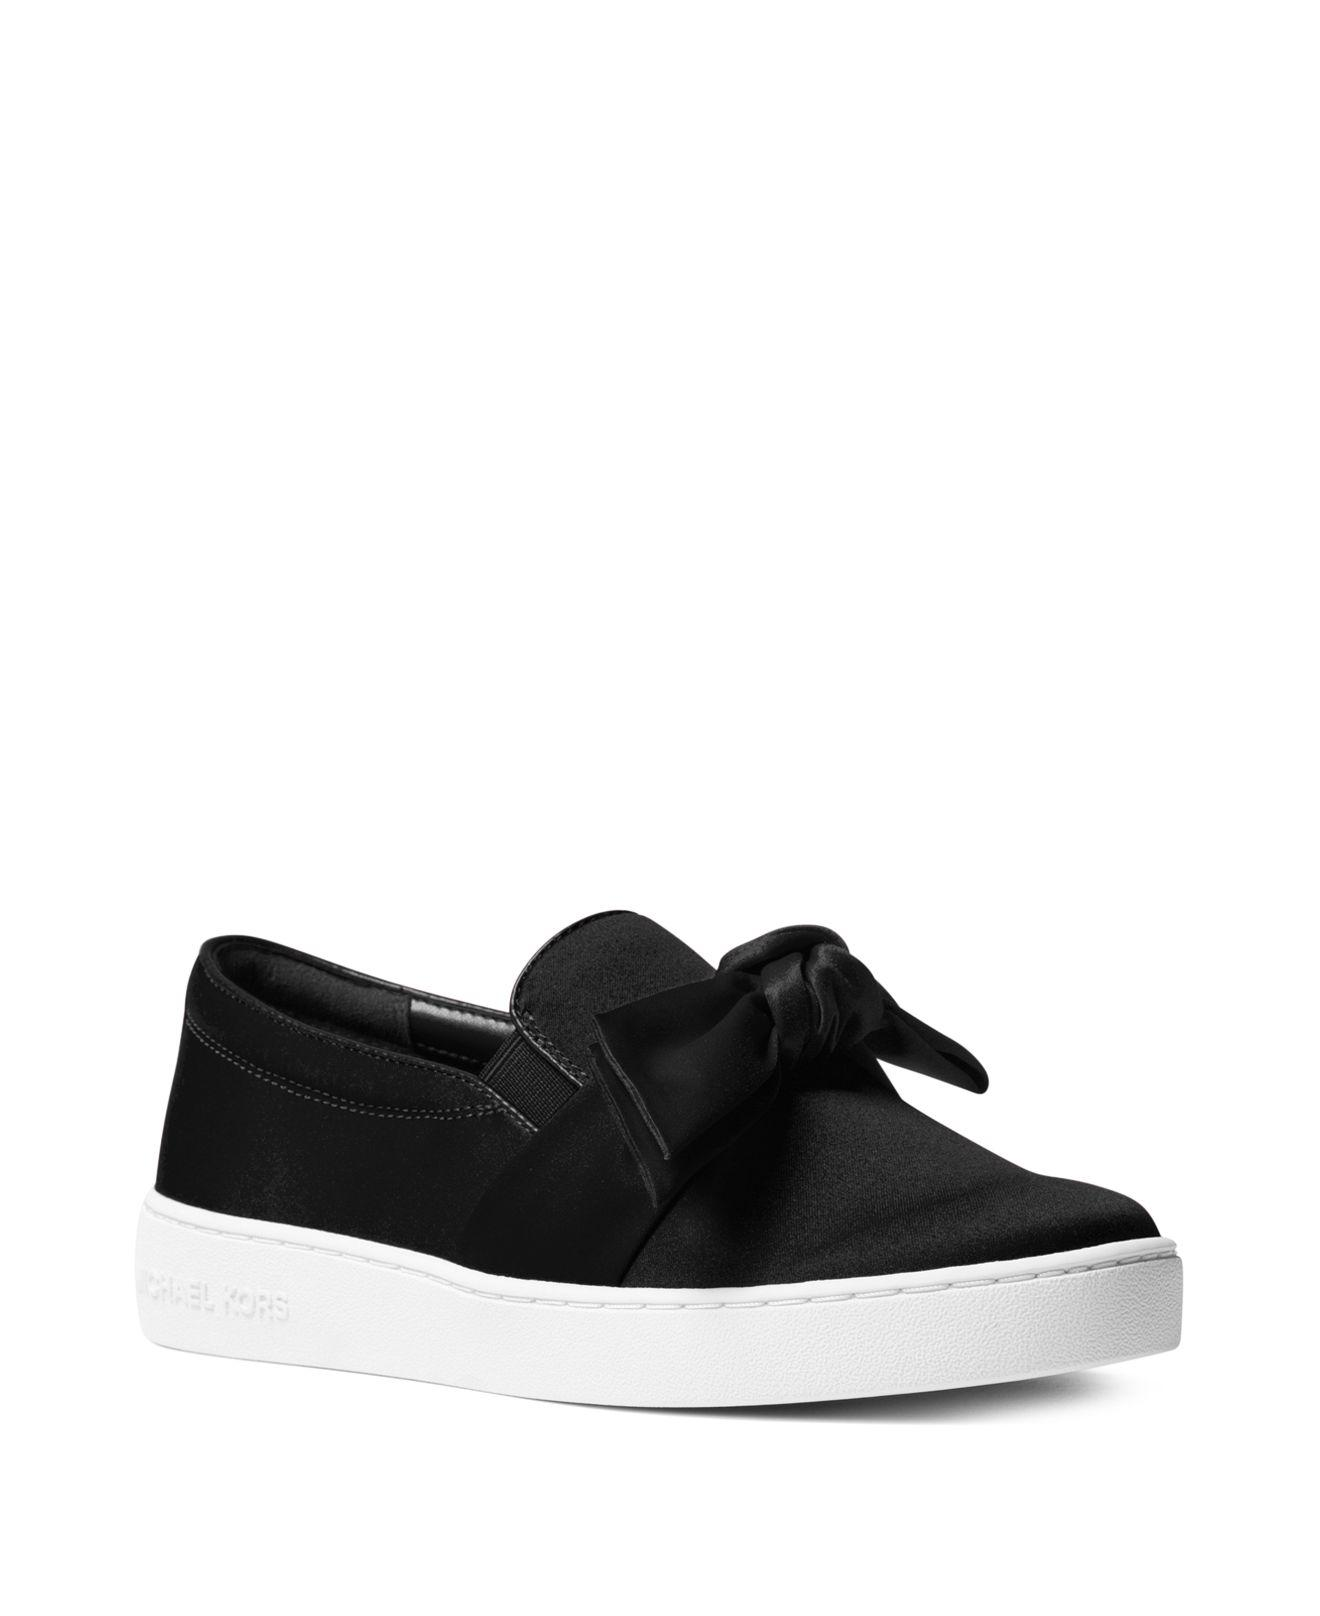 Twuh73ObBD Womens Willa Satin Bow Slip-On Sneakers